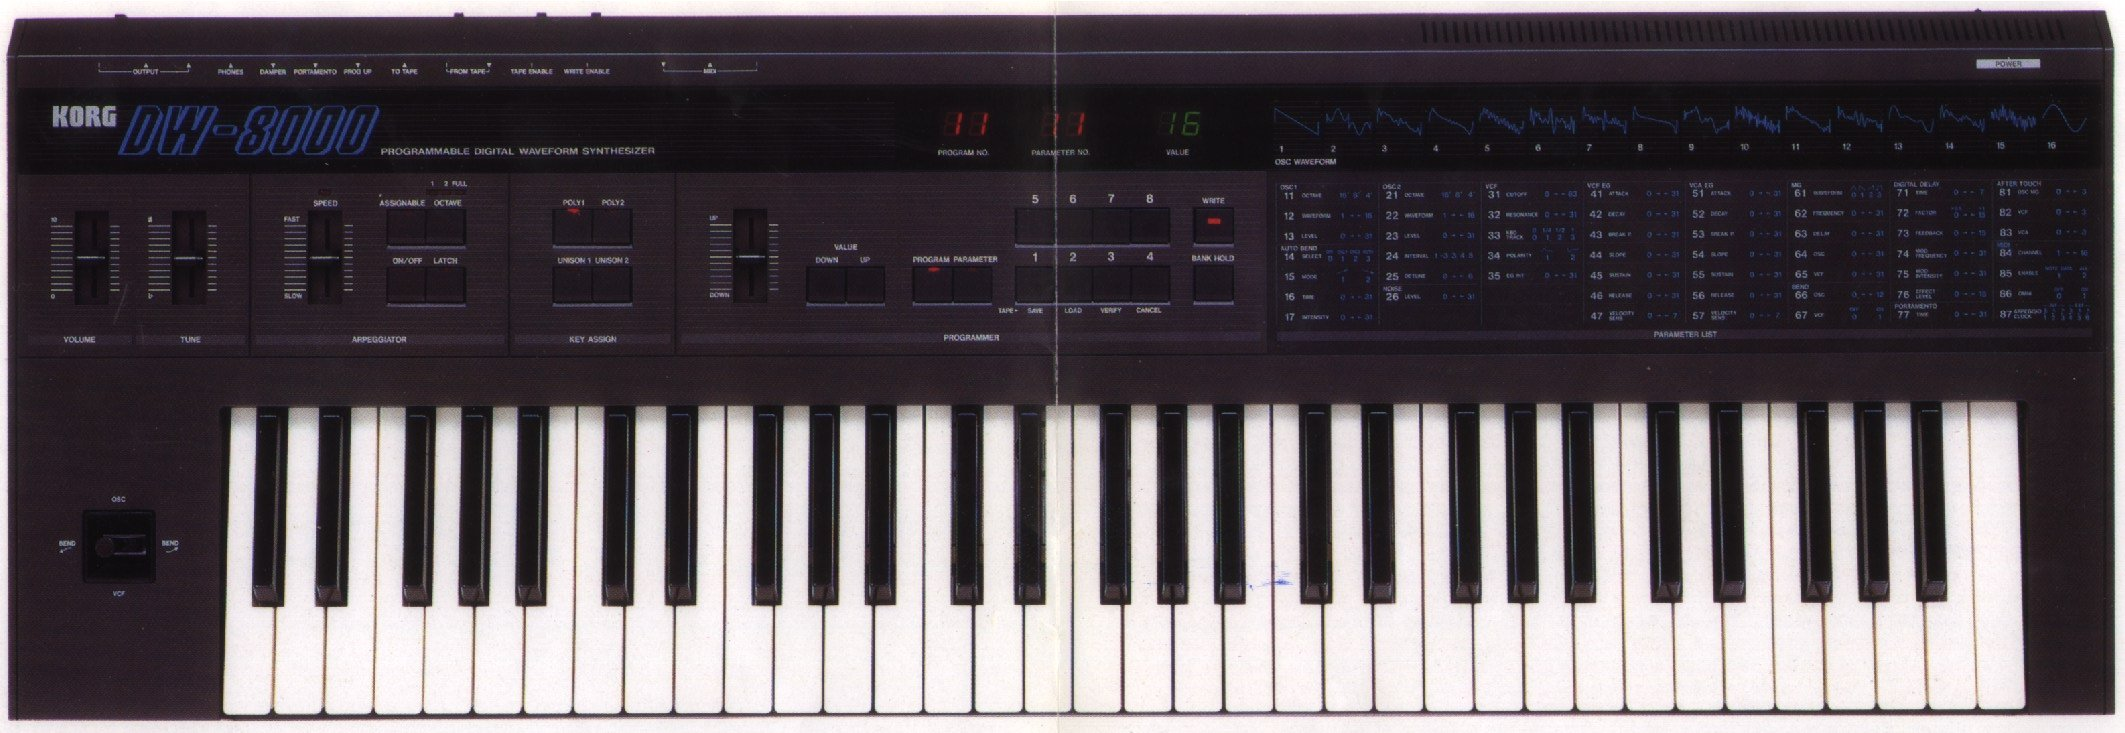 image of Korg DW-8000 (96 Kilobits)